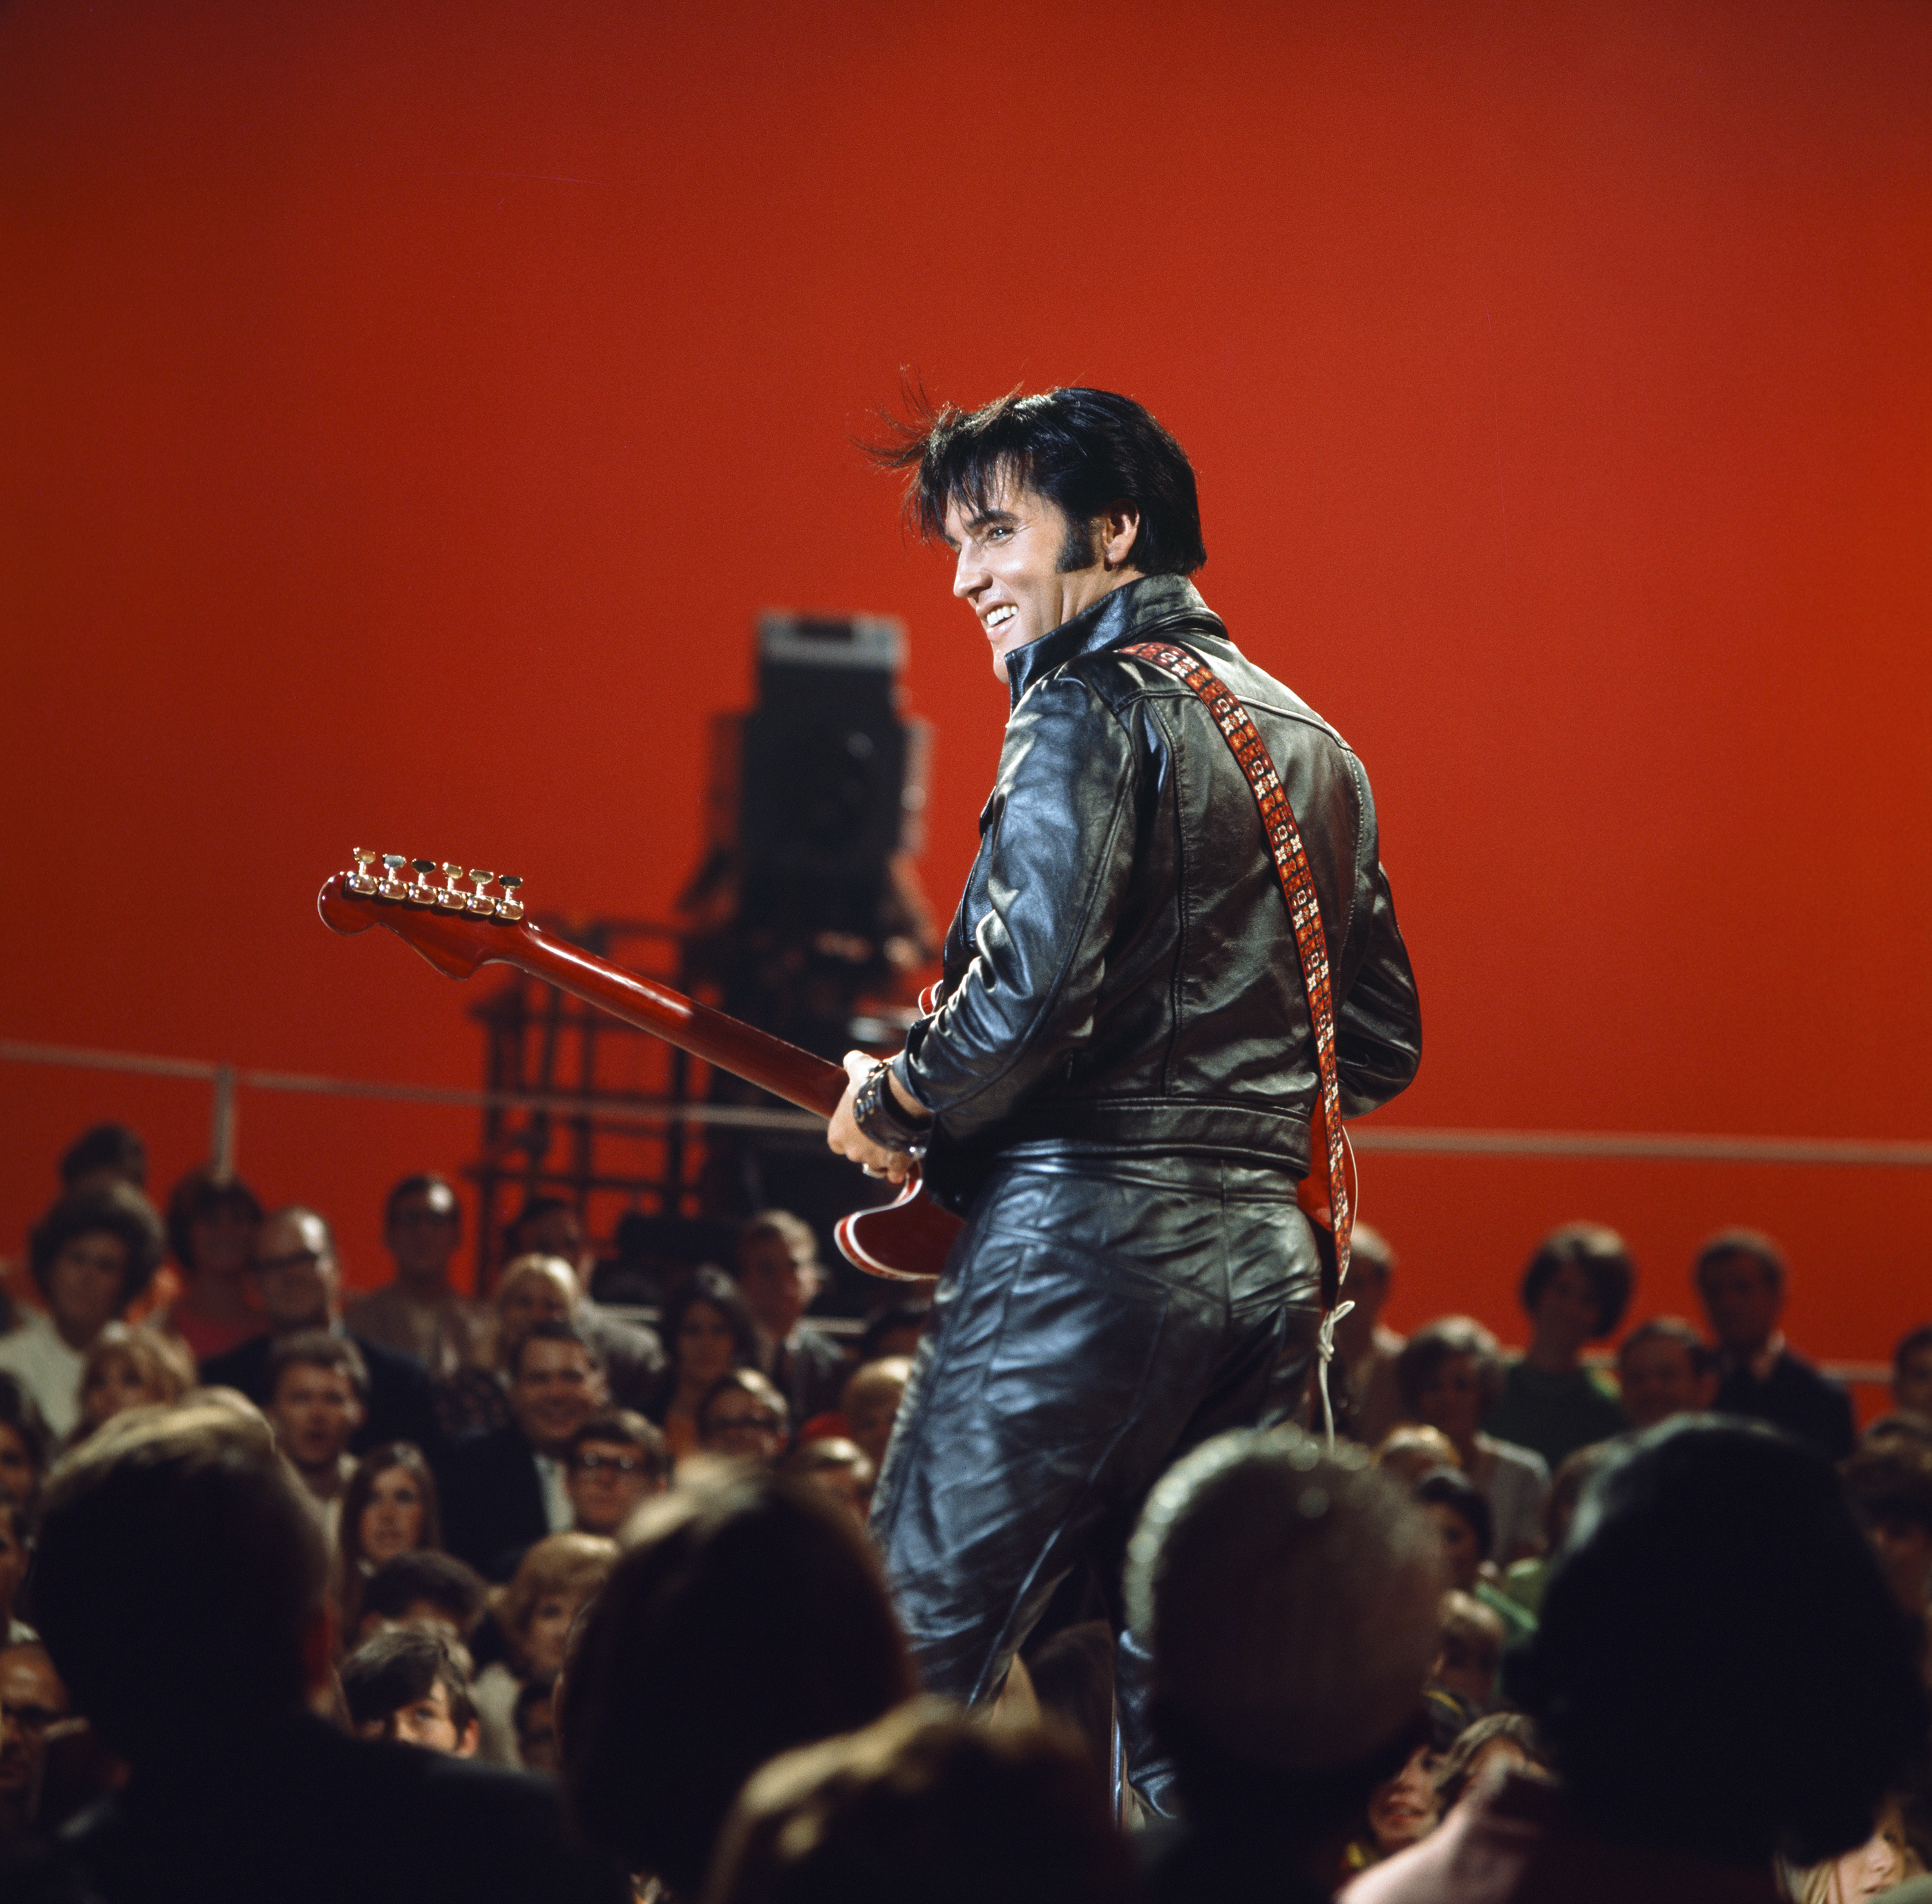 Elvis Presley during his '68 Comeback Special on NBC. President Trump announced on Nov. 10, 2018 that he would be giving the Presidential Medal of Freedom to the late Presley among other notable deceased American icons.